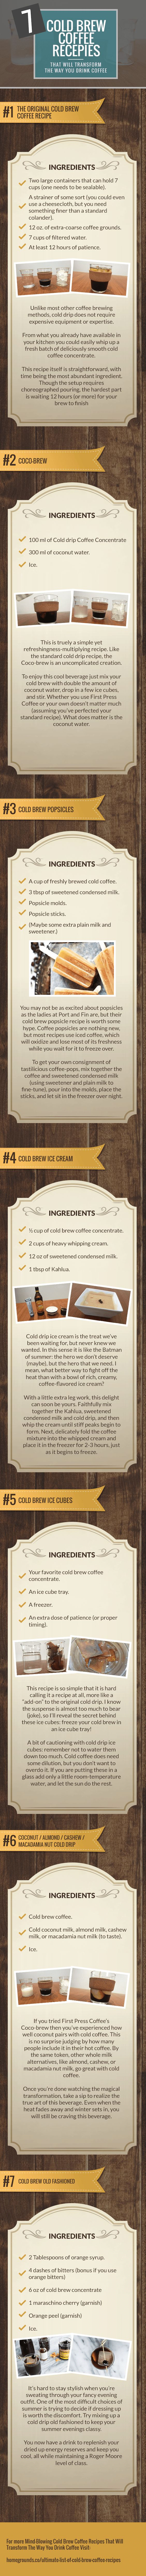 21 Mind-Blowing Cold Brew Coffee Recipes That Will Transform The Way You Drink Coffee - Home Grounds